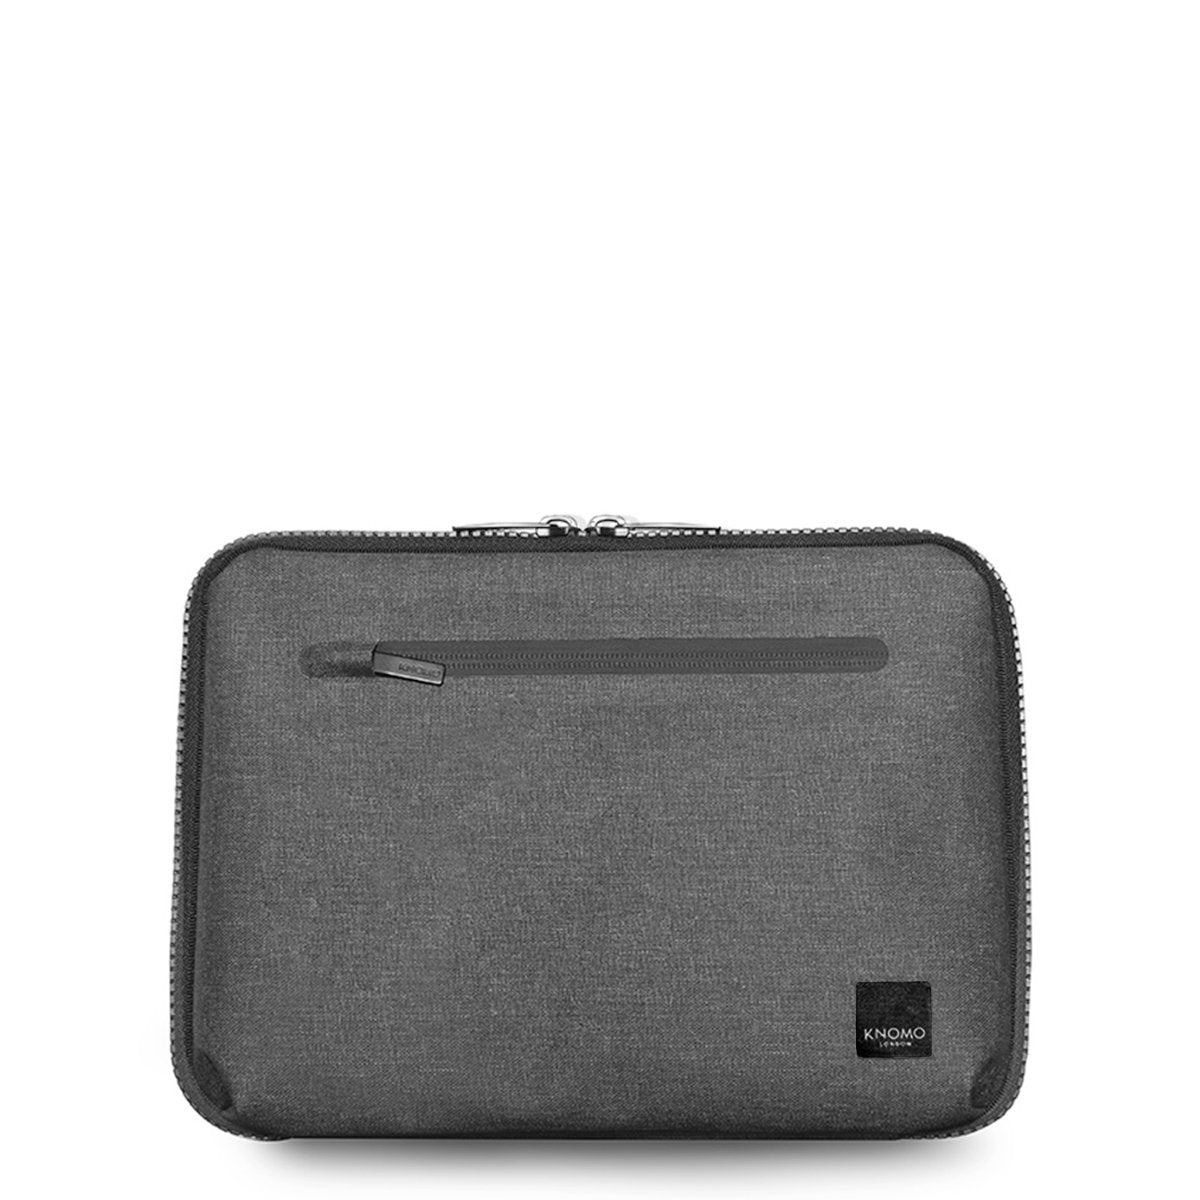 "KNOMO Thames Knomad Organiser Tech Organiser From Front 10.5"" -  Grey 